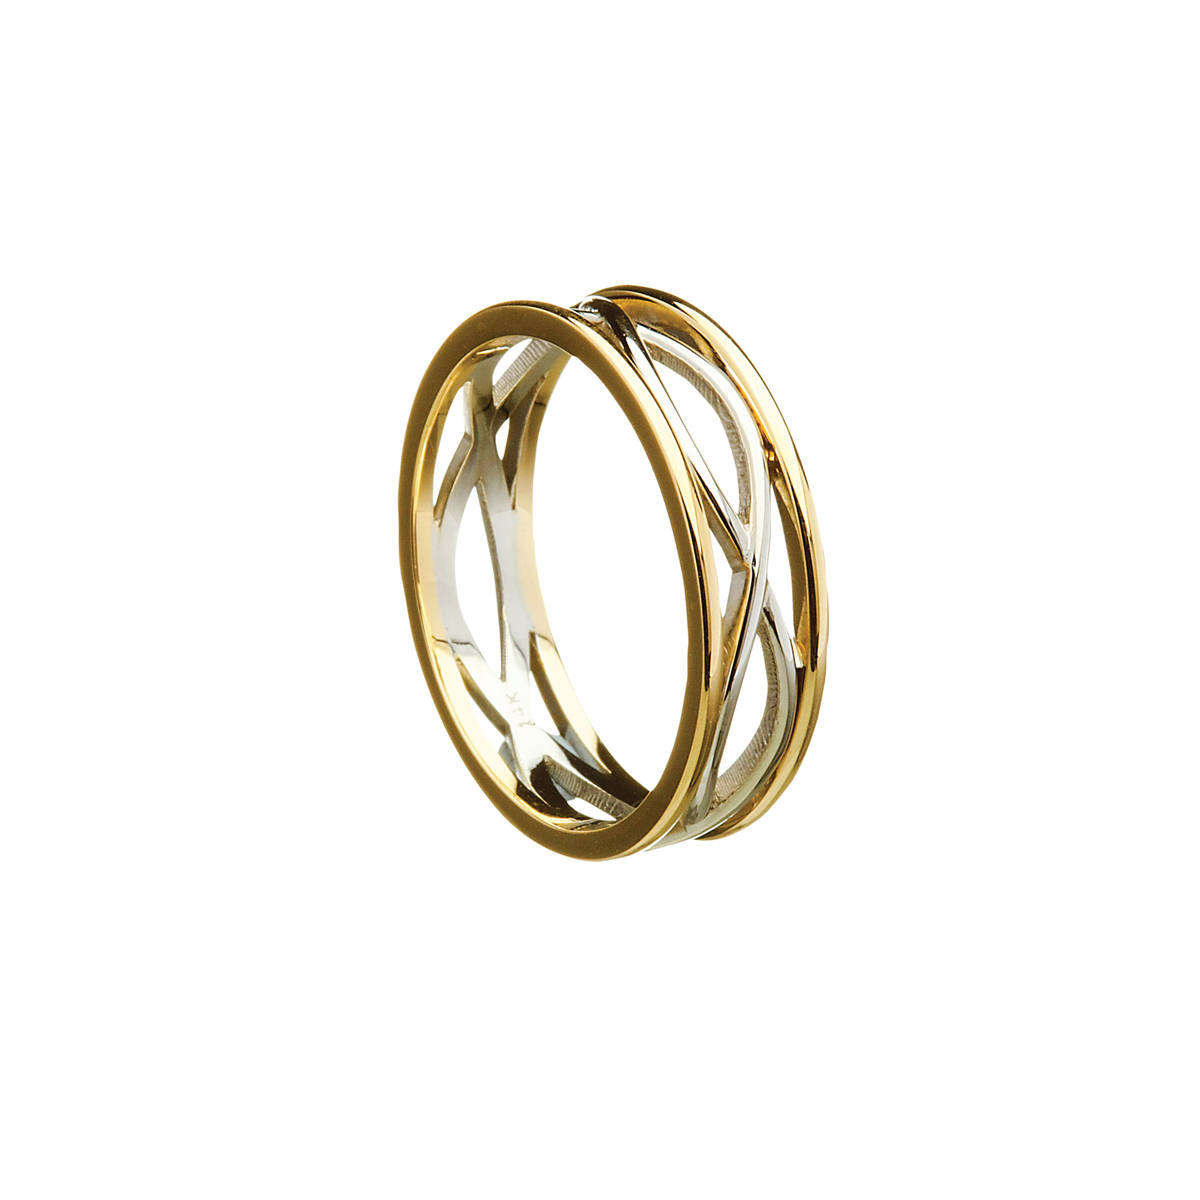 14 carat white gold lady'sCeltic ring withtwo lines entwined with light yellow rims.A great ring that will impress.